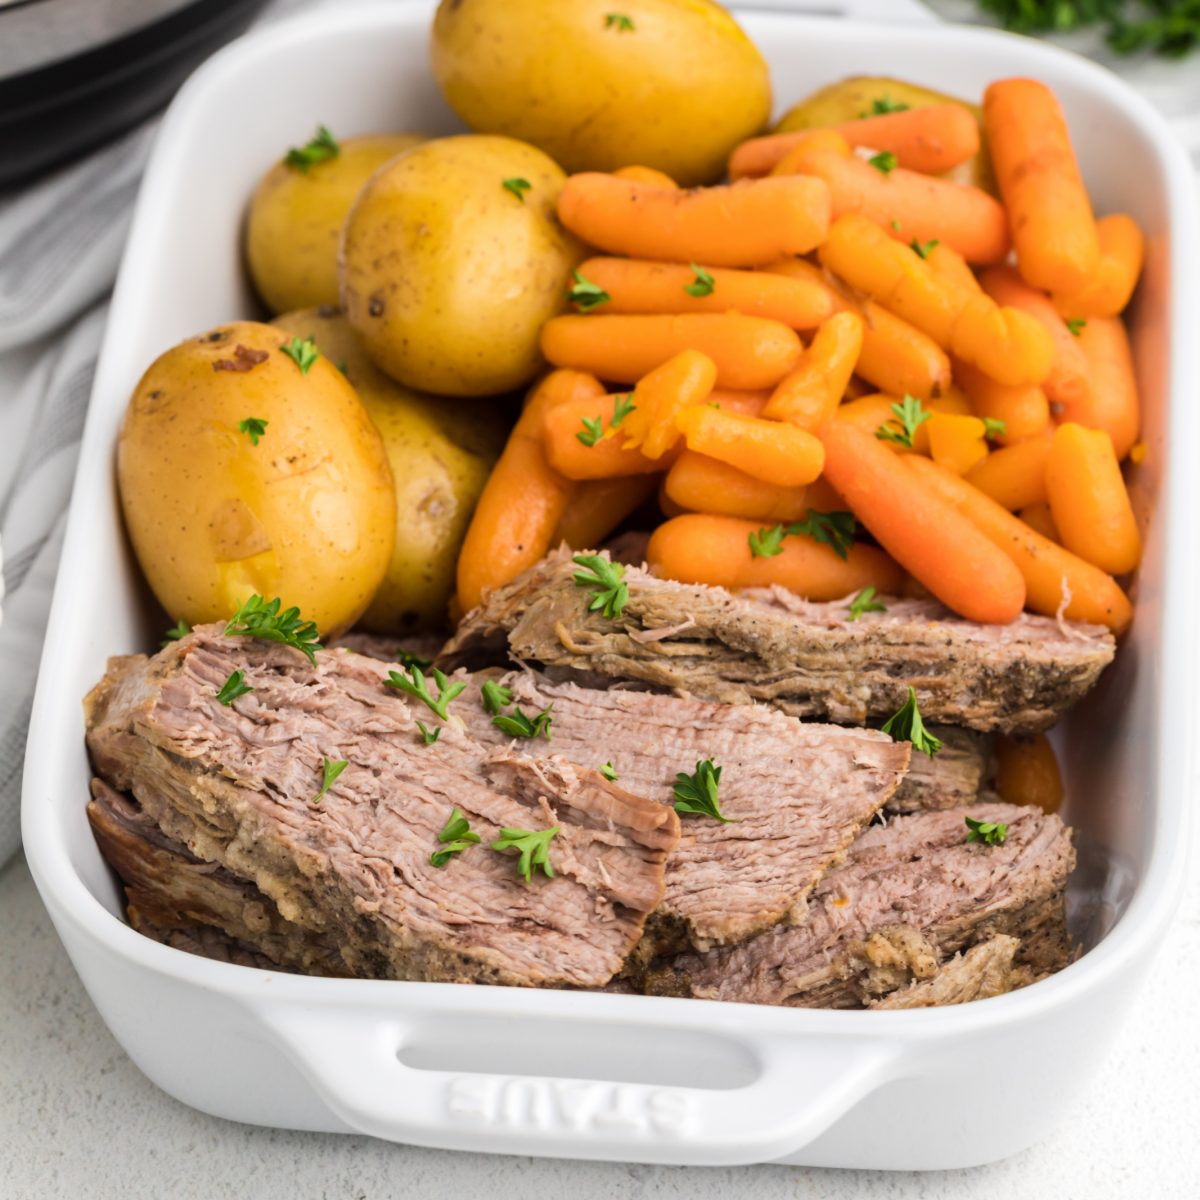 Instant Pot Tri Tip sliced and served with potatoes and carrots.